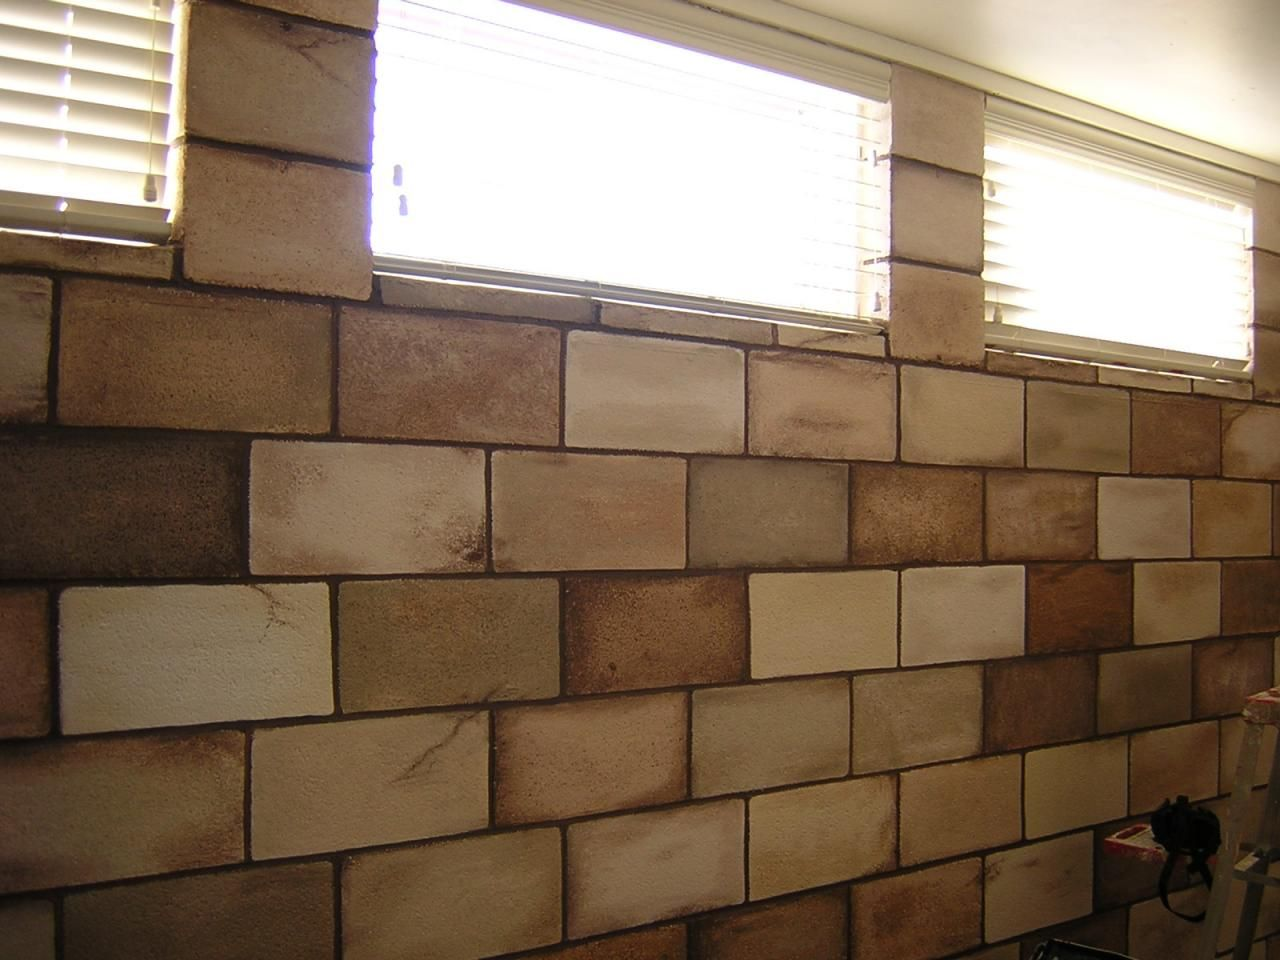 Painted Cinder Block Wall Painting Cinder Block Wallsdesign Ideas Adorable Wall Paint Design For